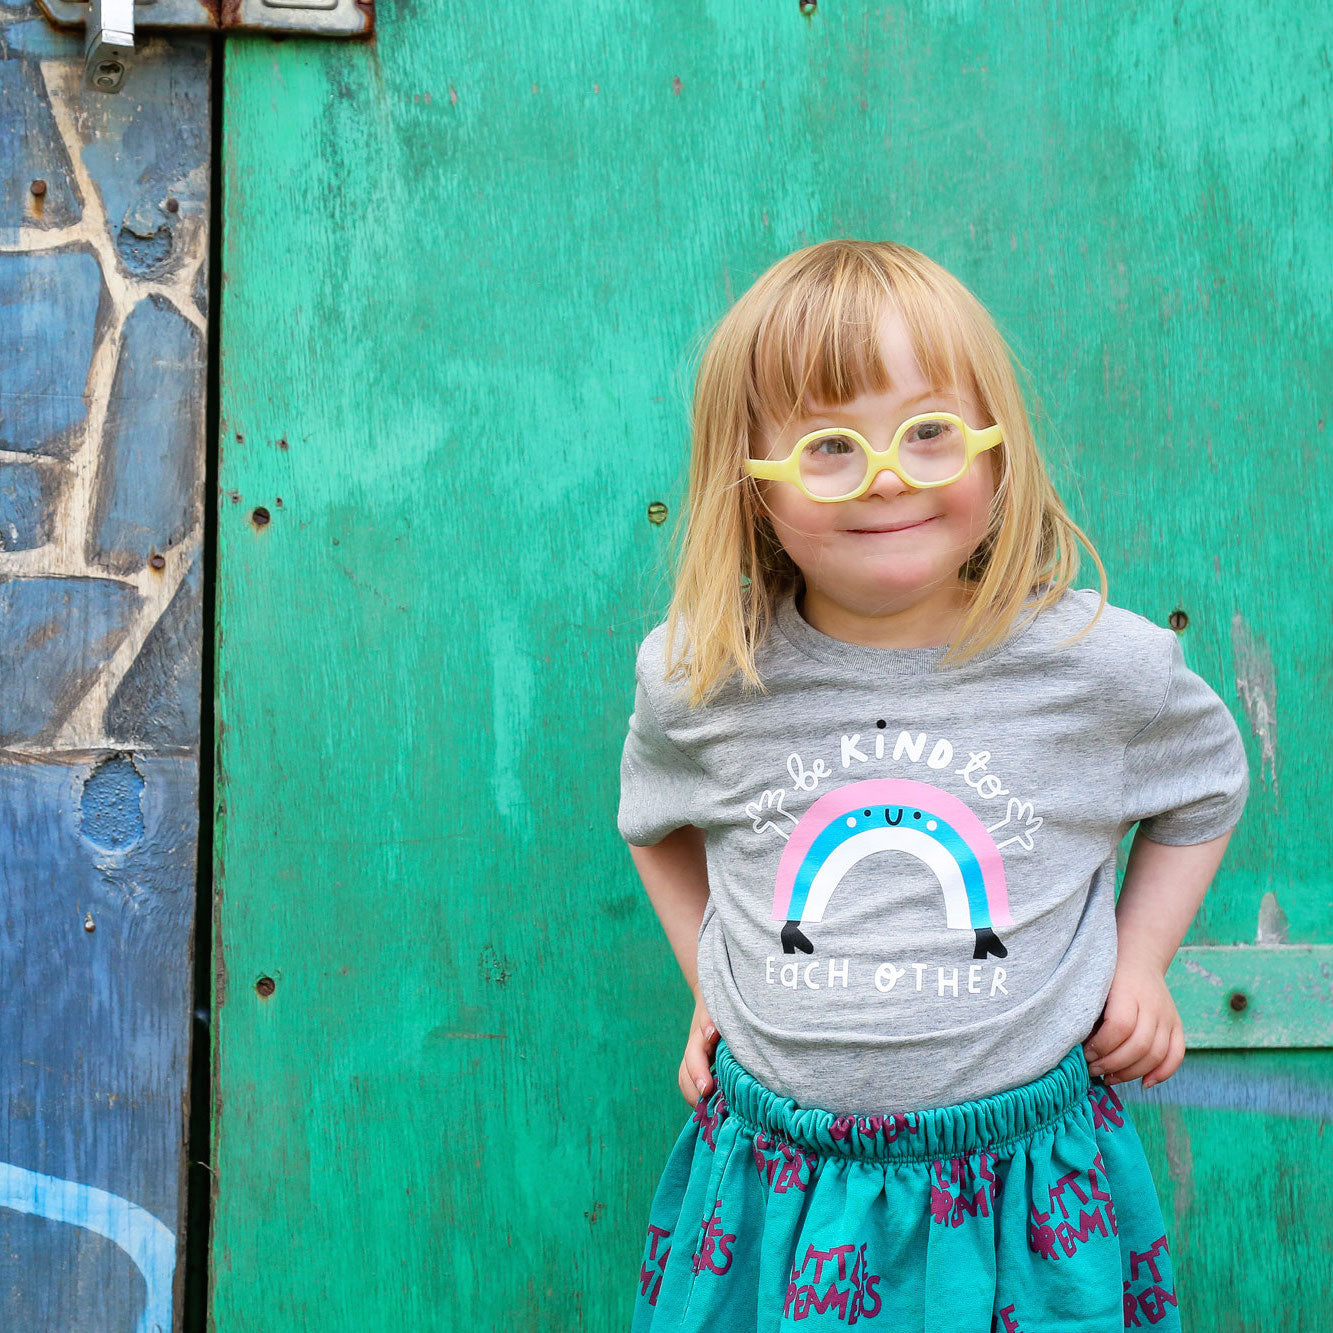 Rainbow Short Sleeve T-shirt - The Wee Store Brighton Children's Clothing & Gifts